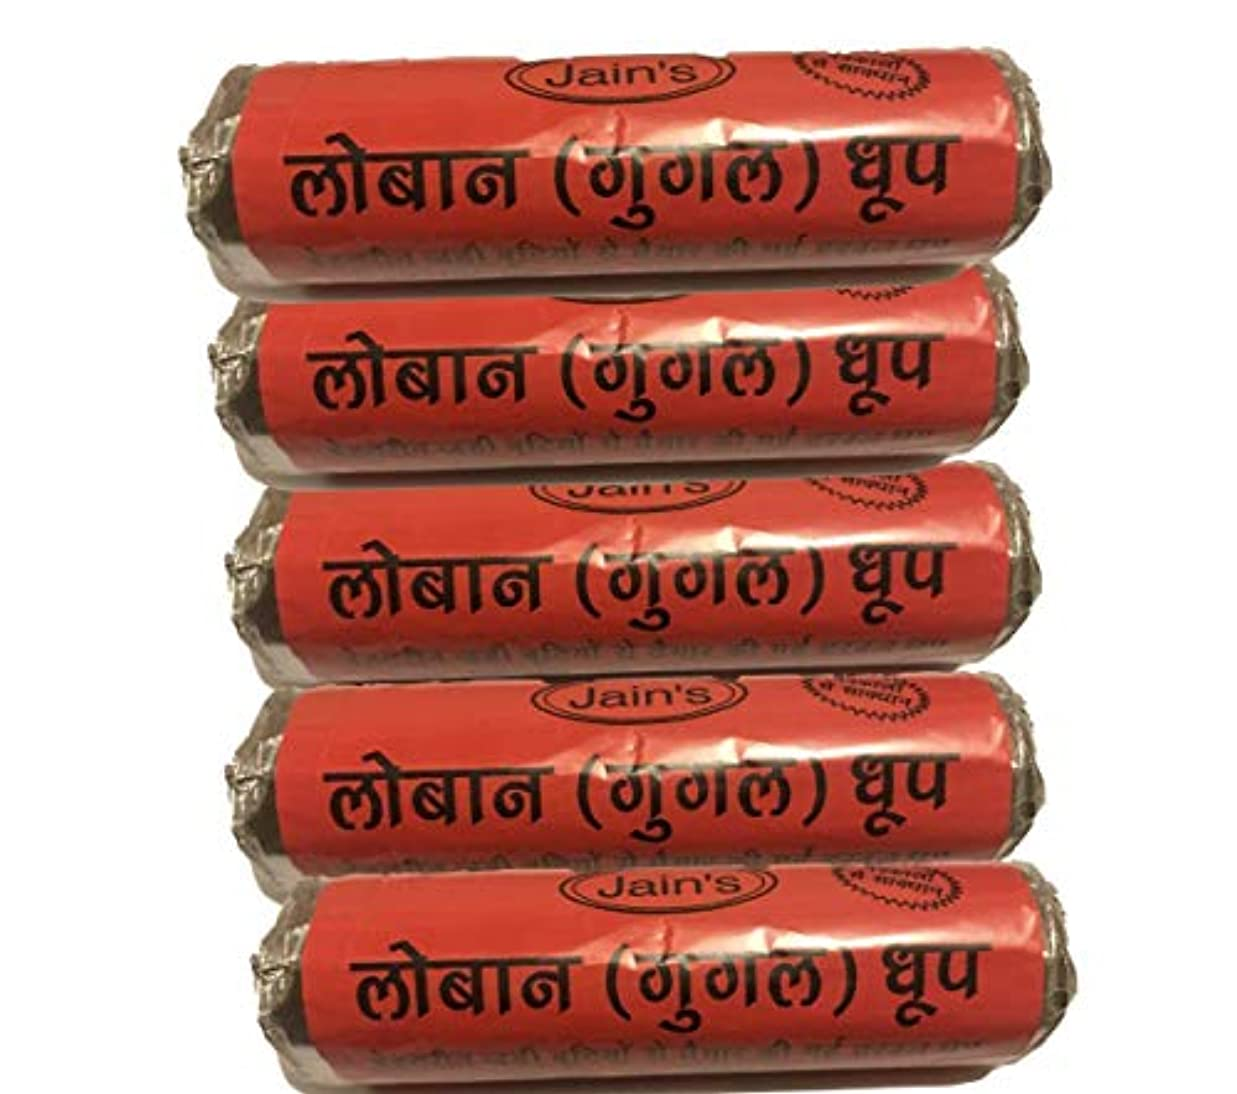 ブロンズスペード無線All Natural Herbal Gugal Loban Dhoop Rolls (1 Kg) - Pack of 5